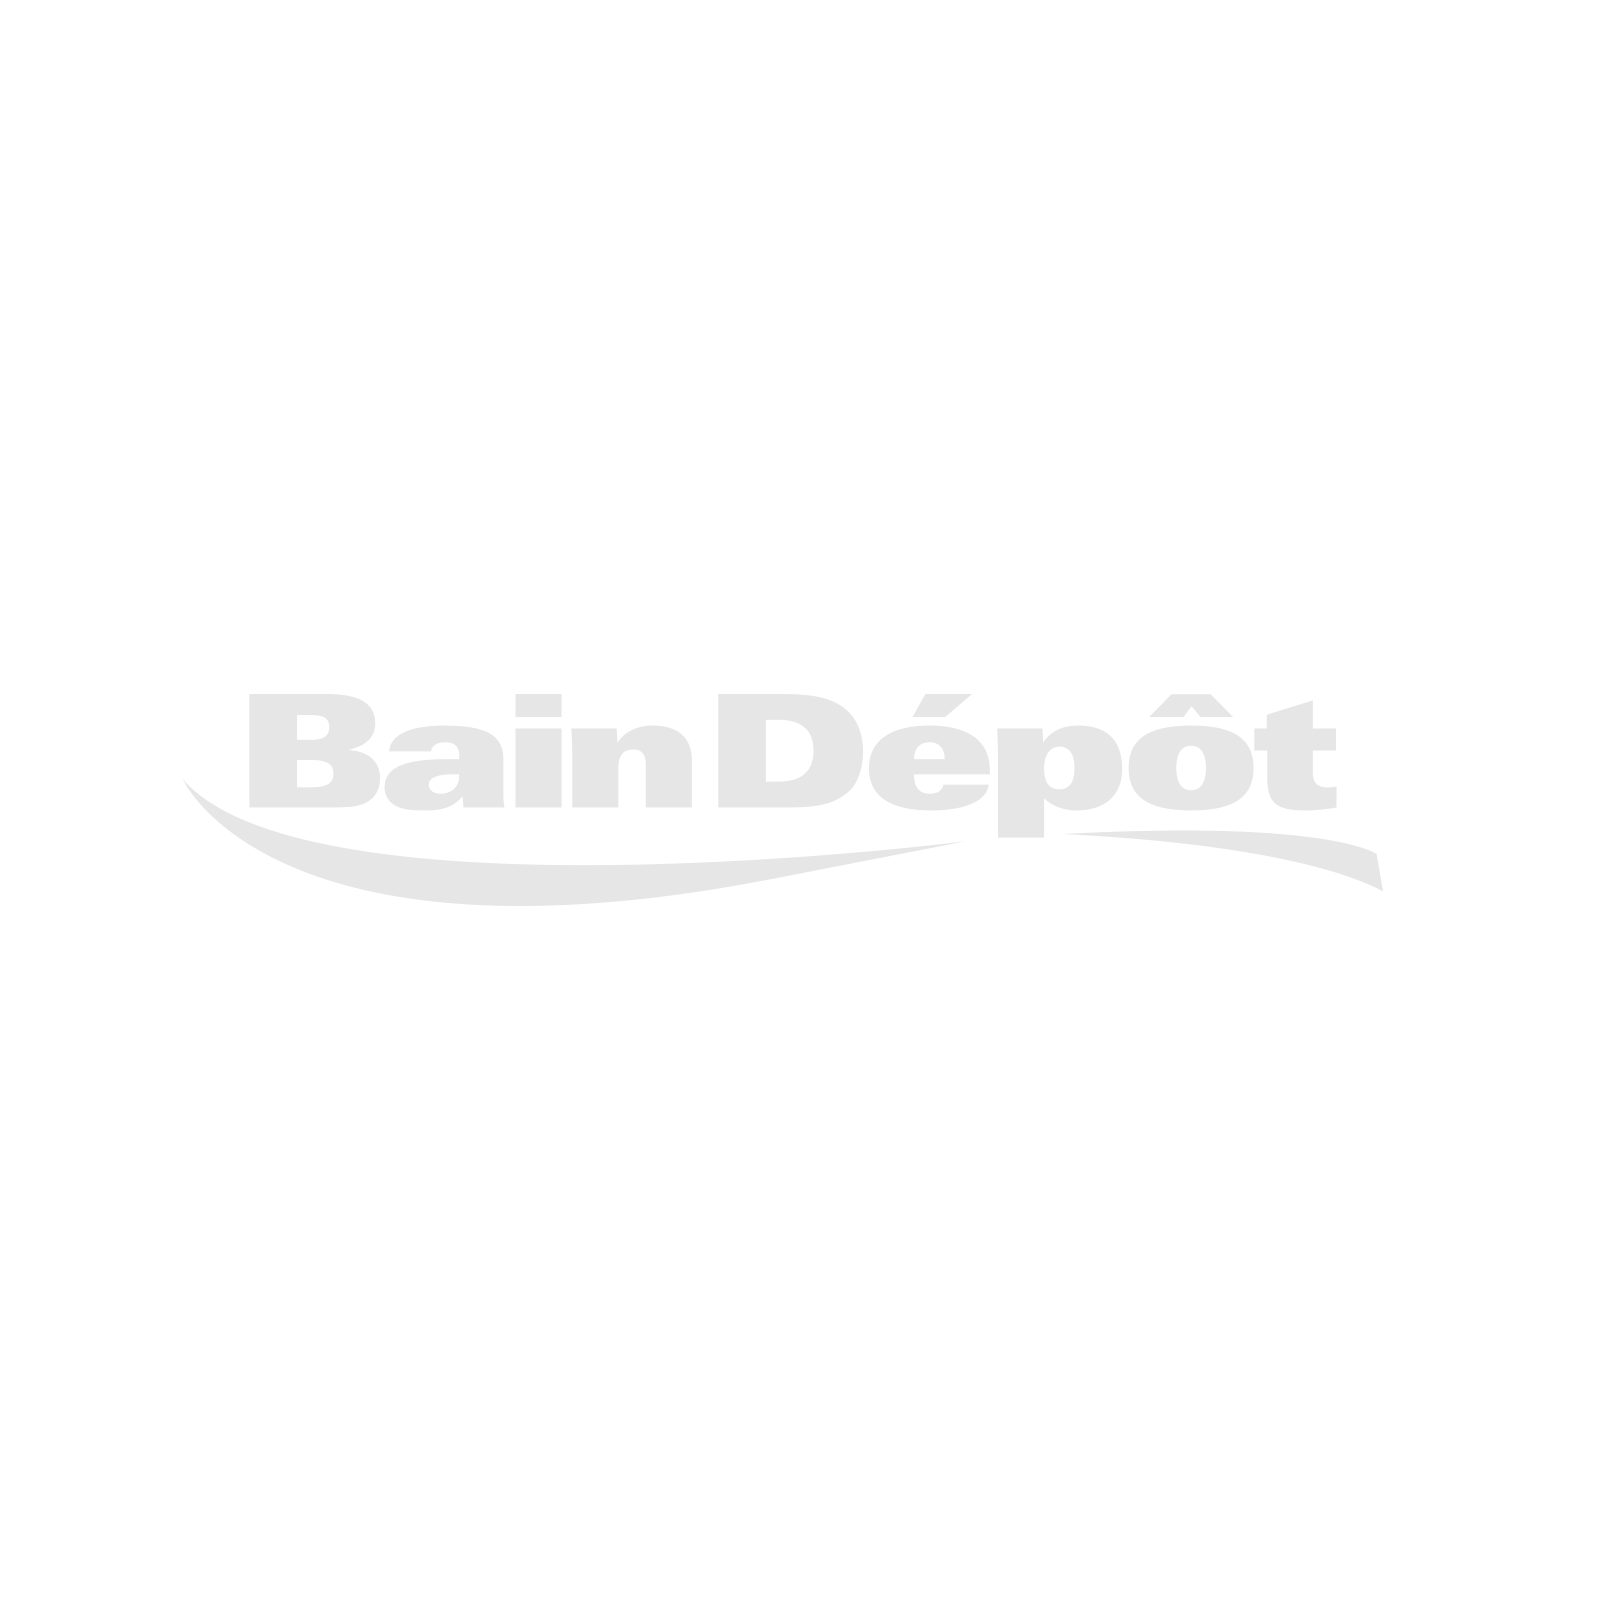 Brushed nickel and rounded shower faucet with rain shower head